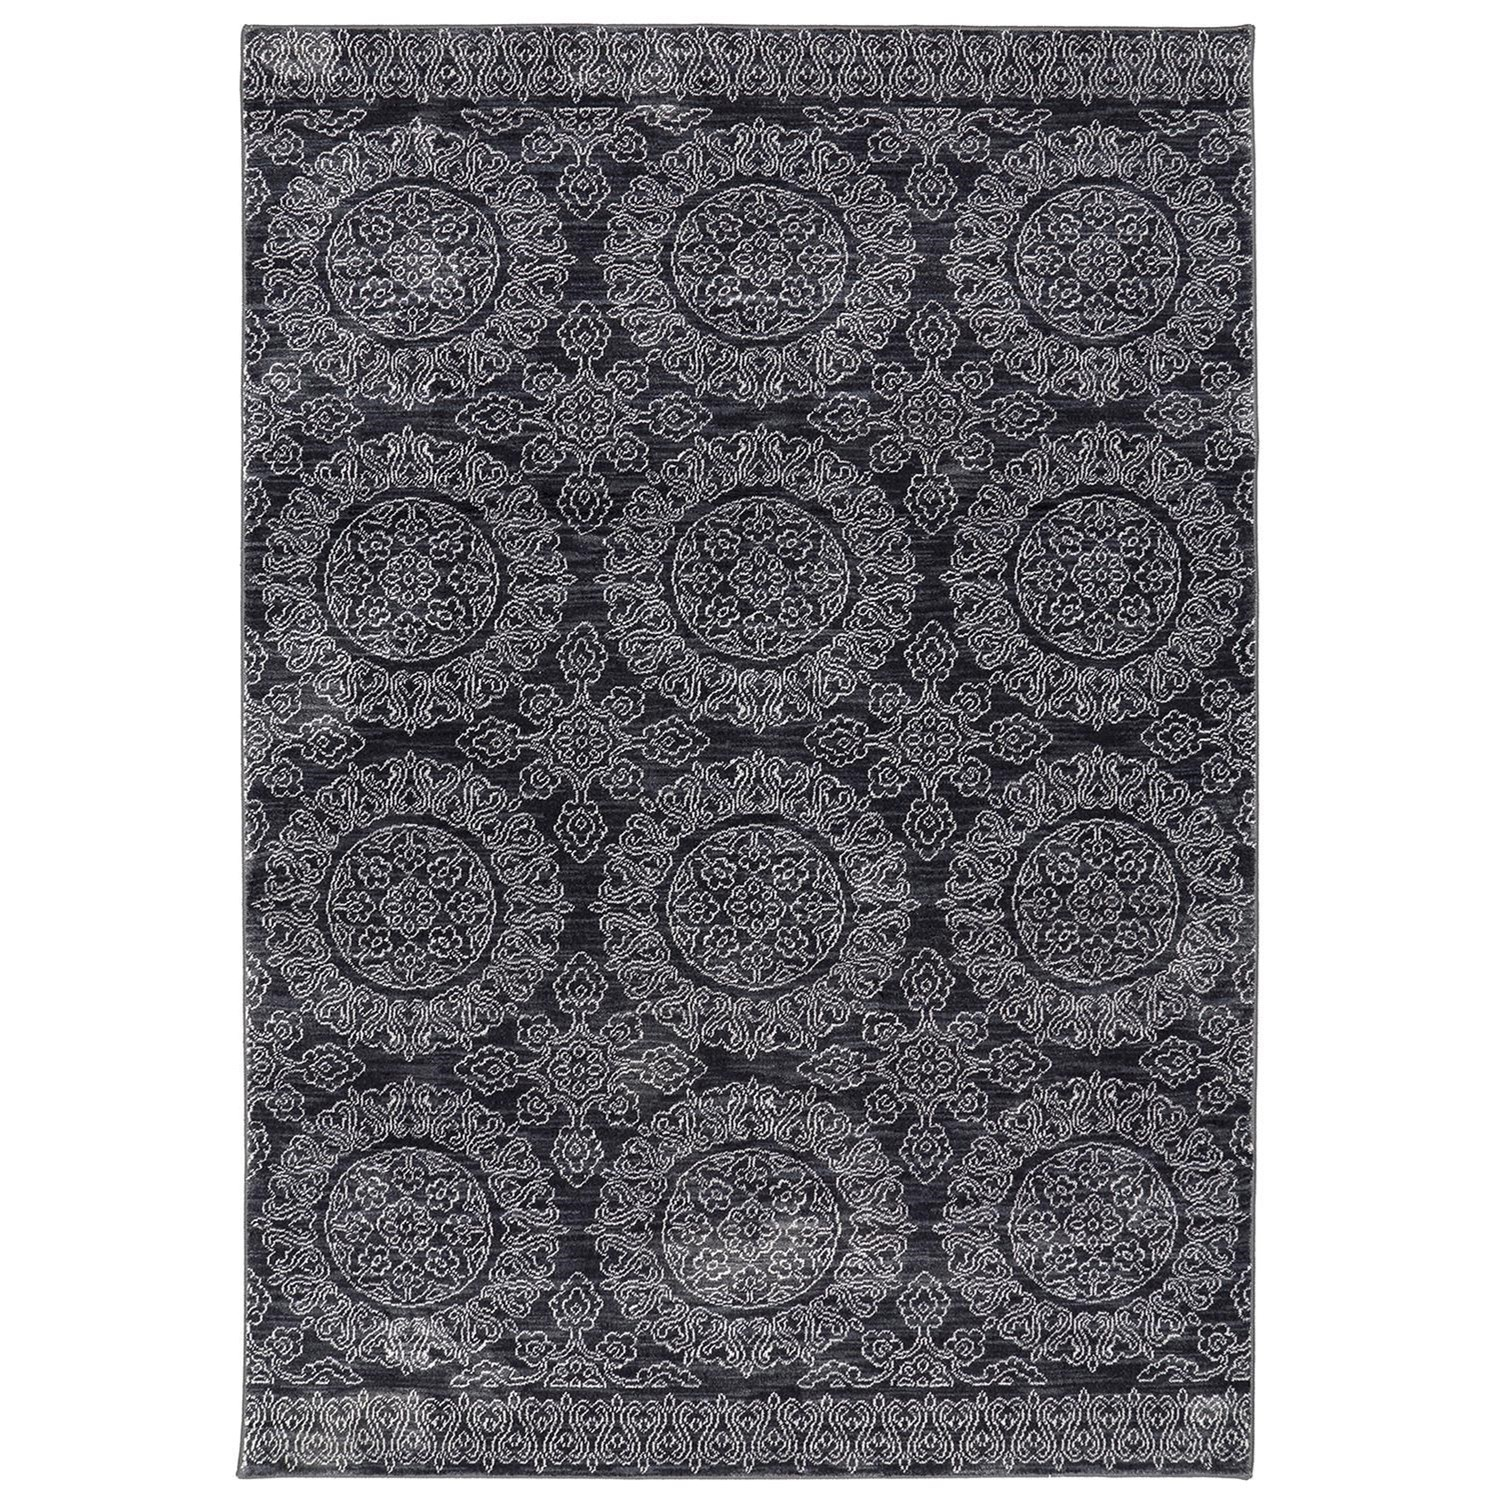 Pacifica 96x1211 Leawood Black Rug Rotmans Worcester Boston